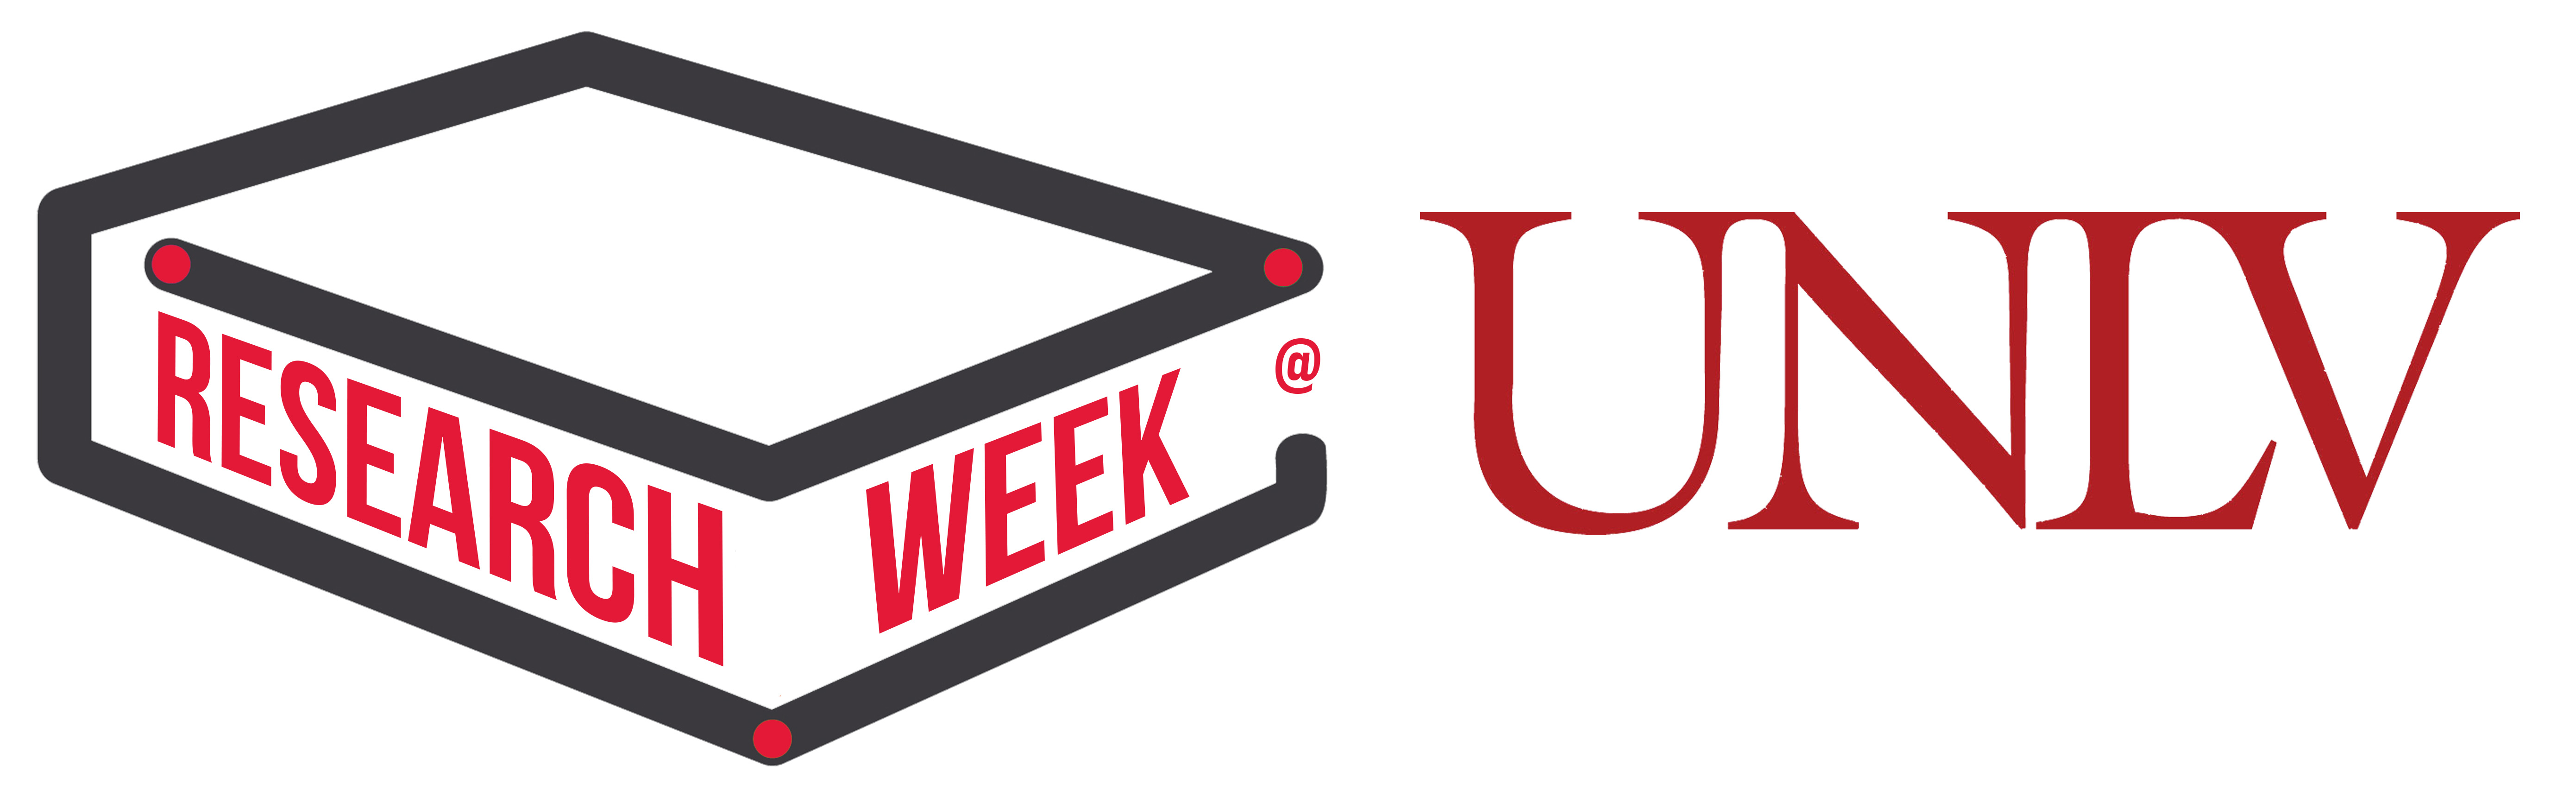 Research Week at UNLV